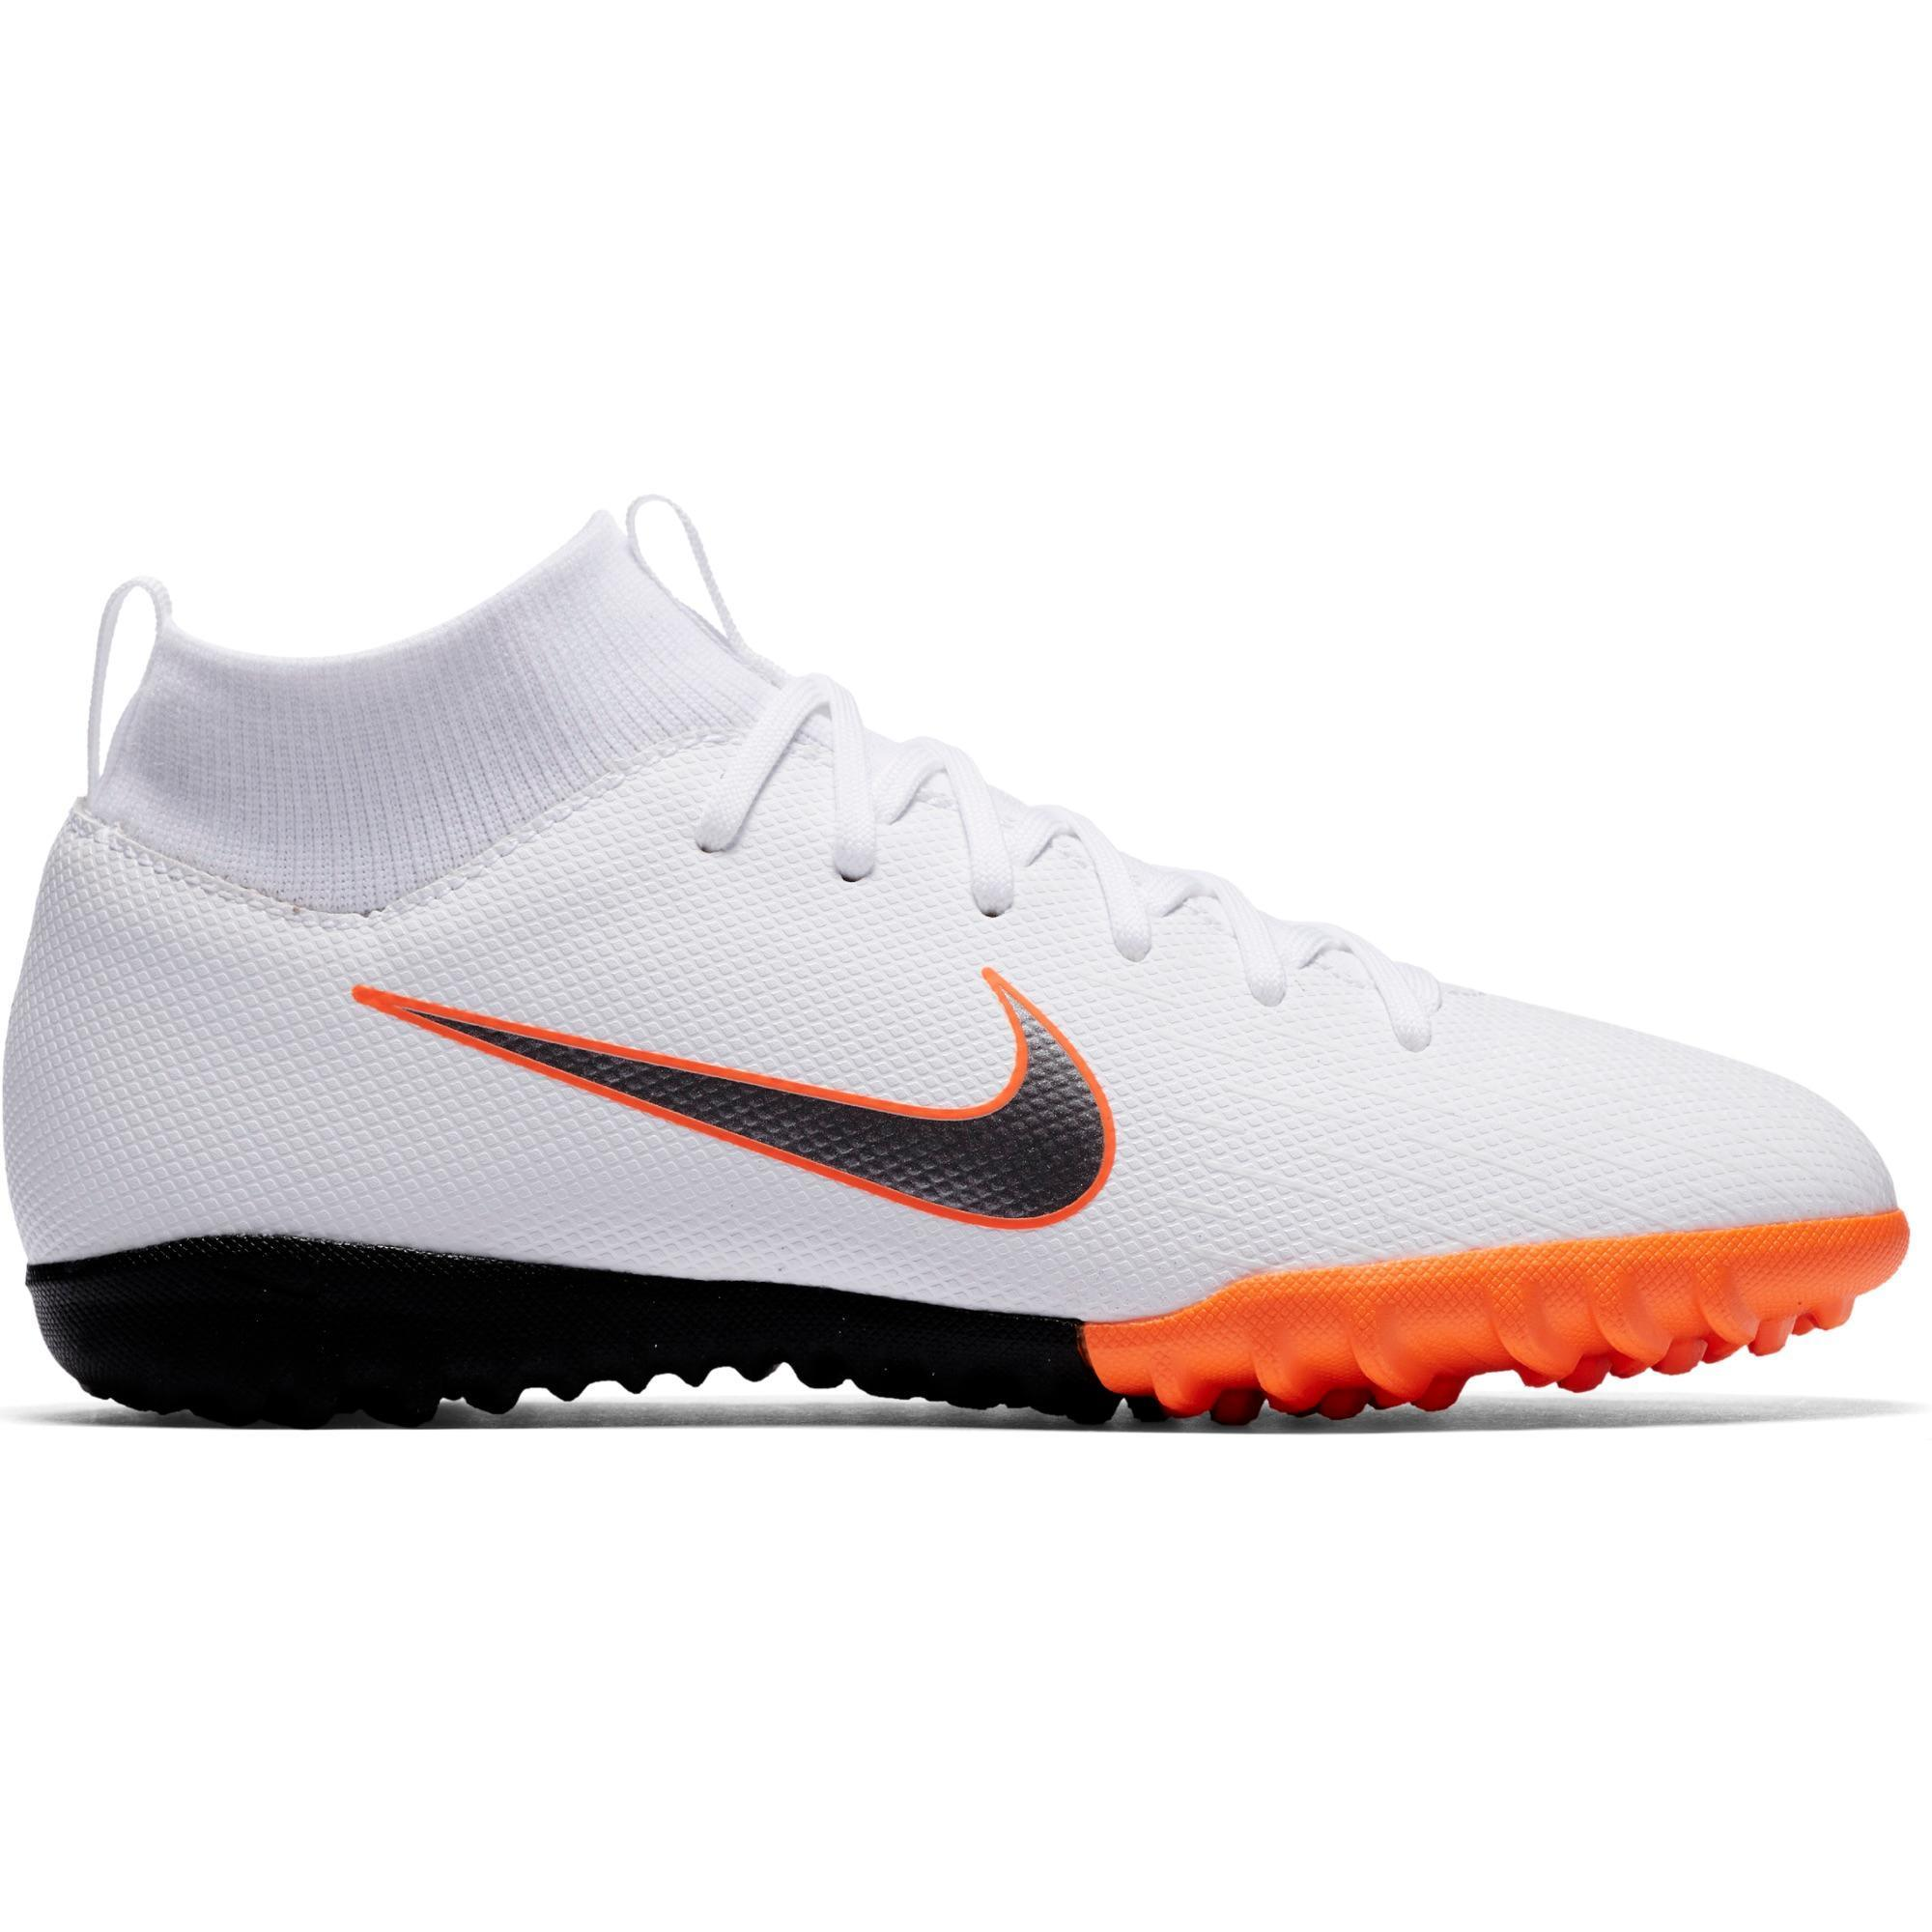 brand new 2d92e c779b Nike Chaussure de football enfant Mercurial Superfly 6 academy TF    Decathlon